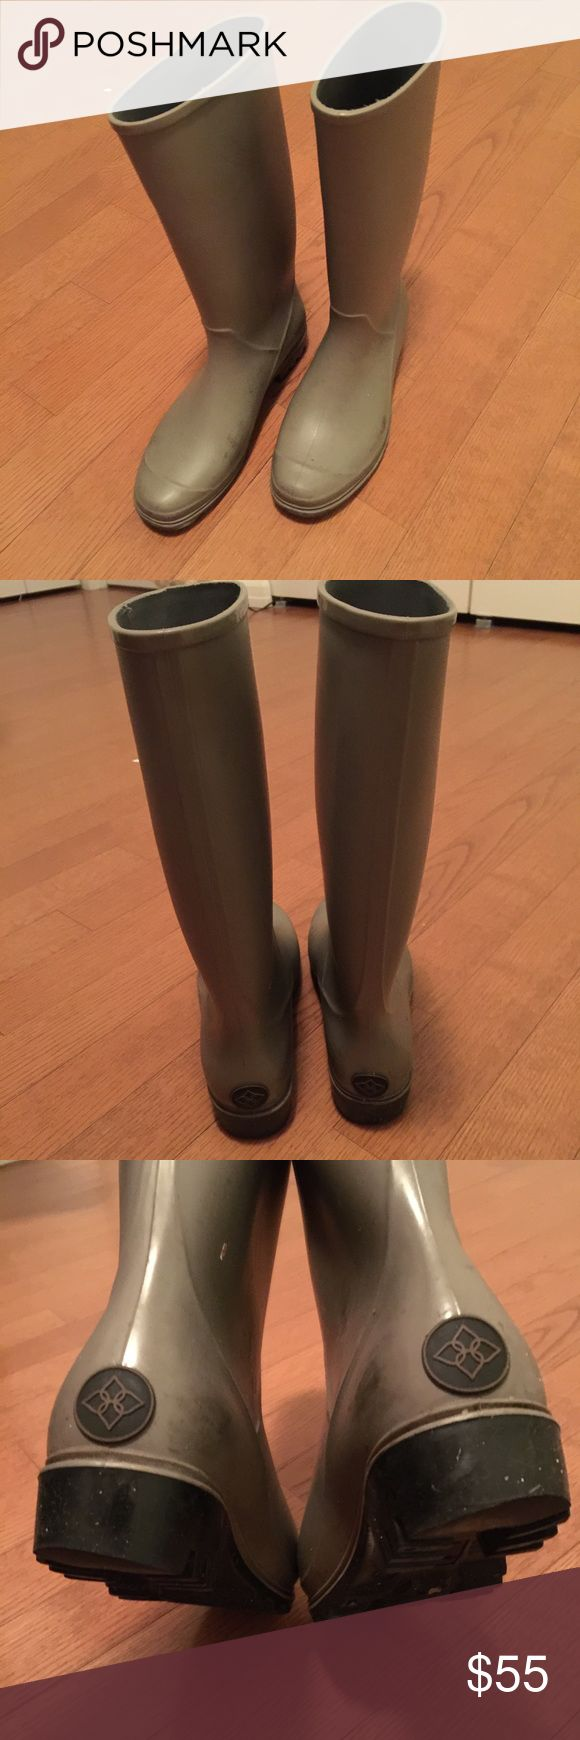 dav grey rubber rain boots easy to clean and comfy rain boots! dav Shoes Winter & Rain Boots